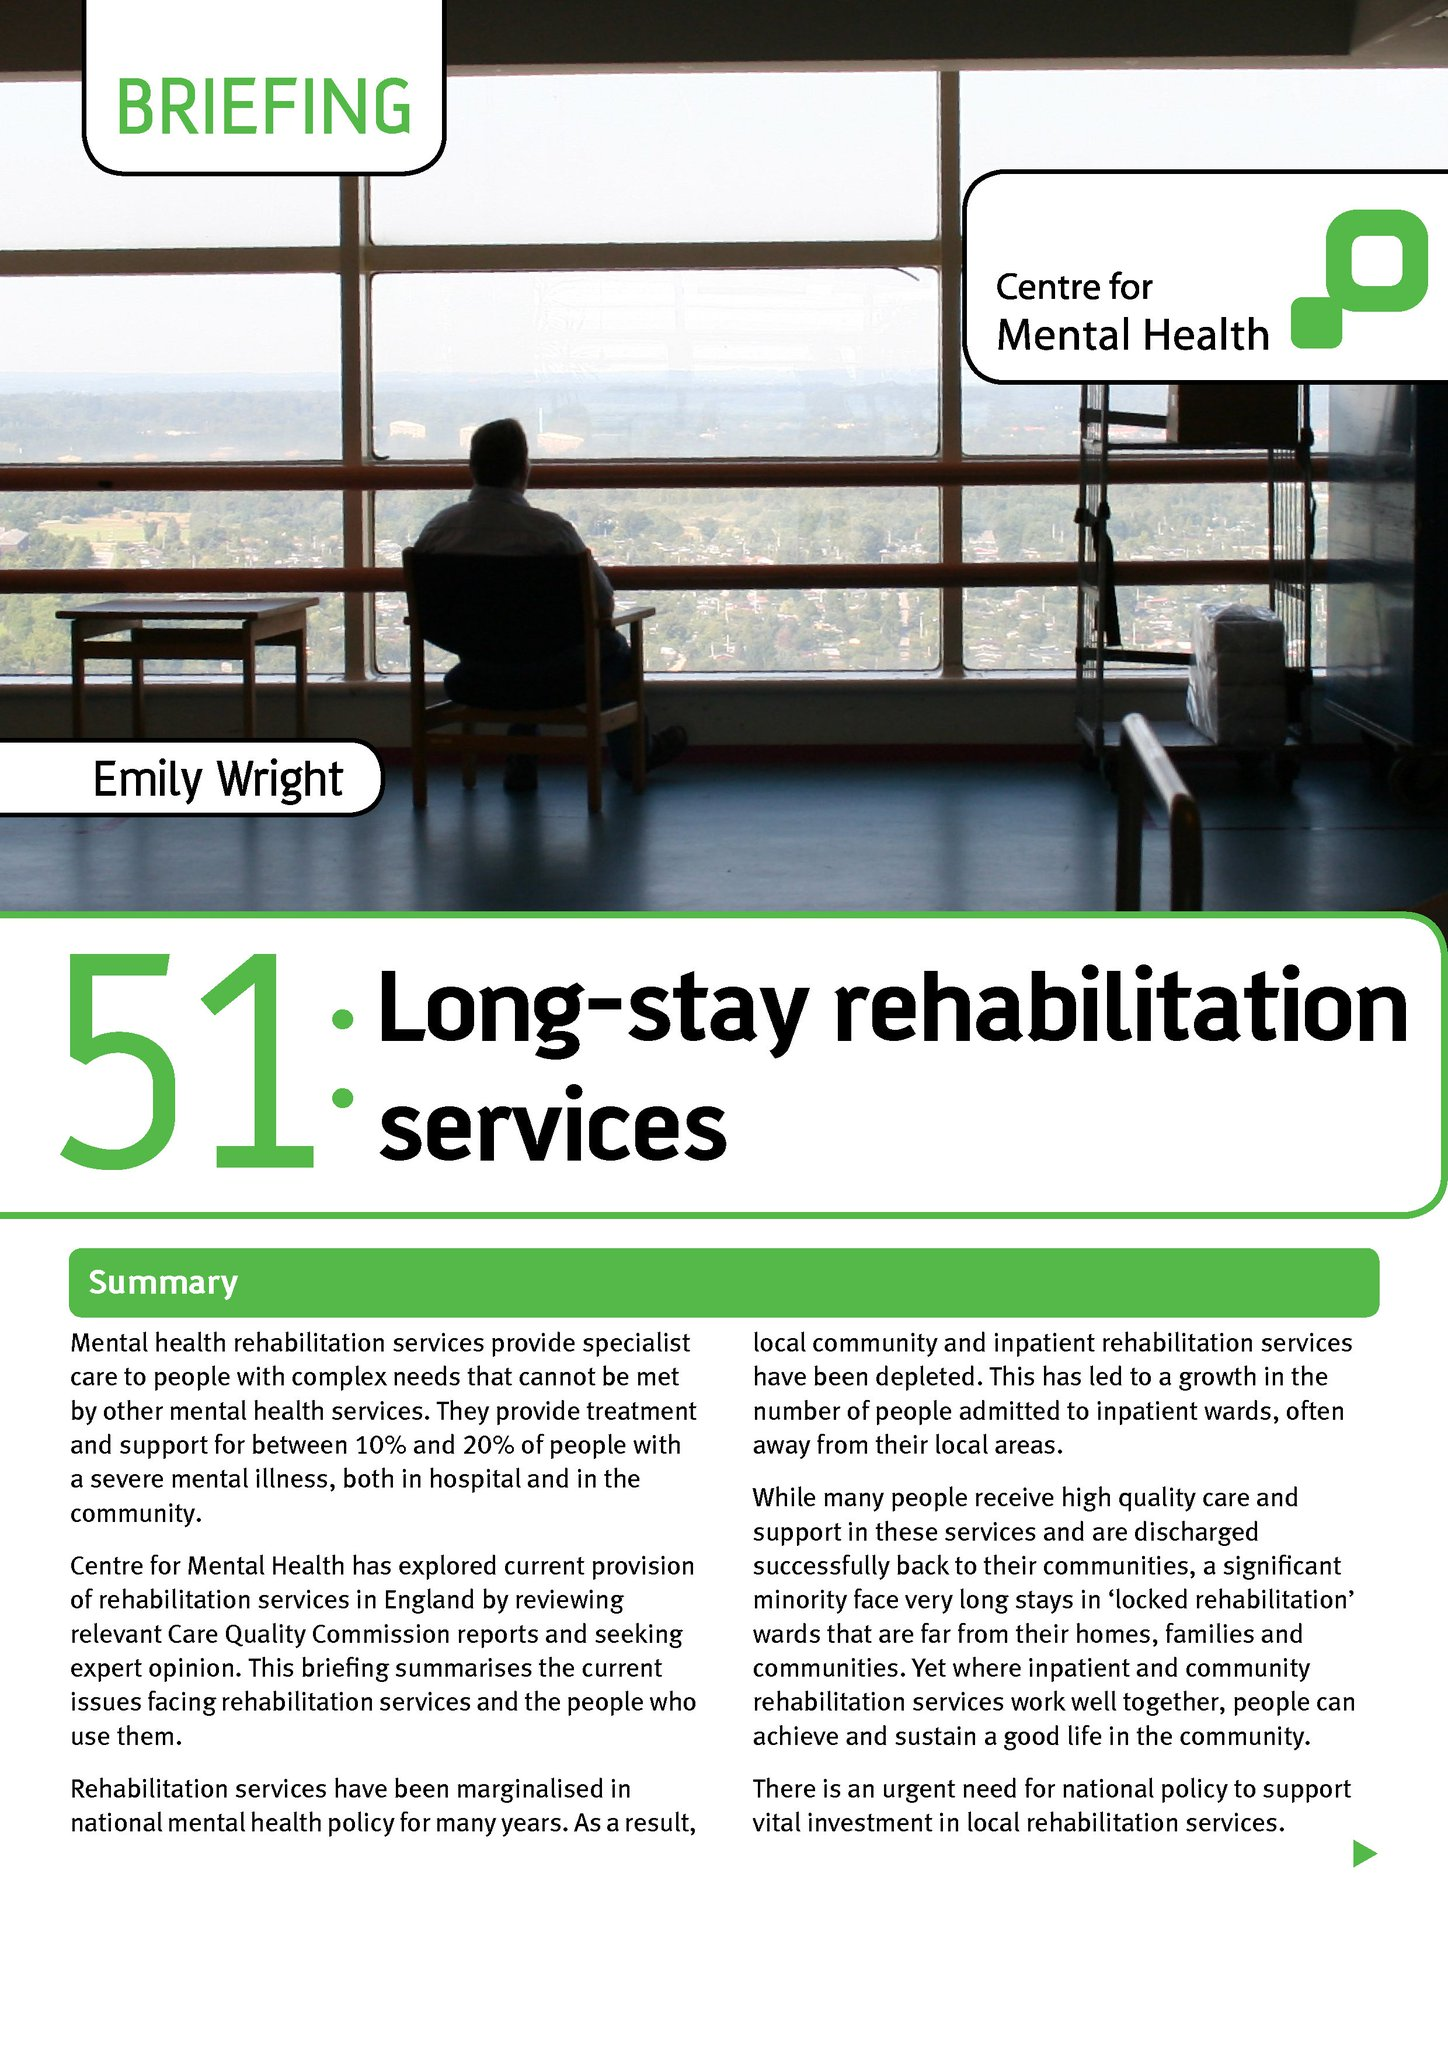 It builds on our research earlier this year which shone a light on people in long-stay rehabilitation: https://t.co/PBs3hT5IfT #StateOfMH https://t.co/gxQDJYsdNP